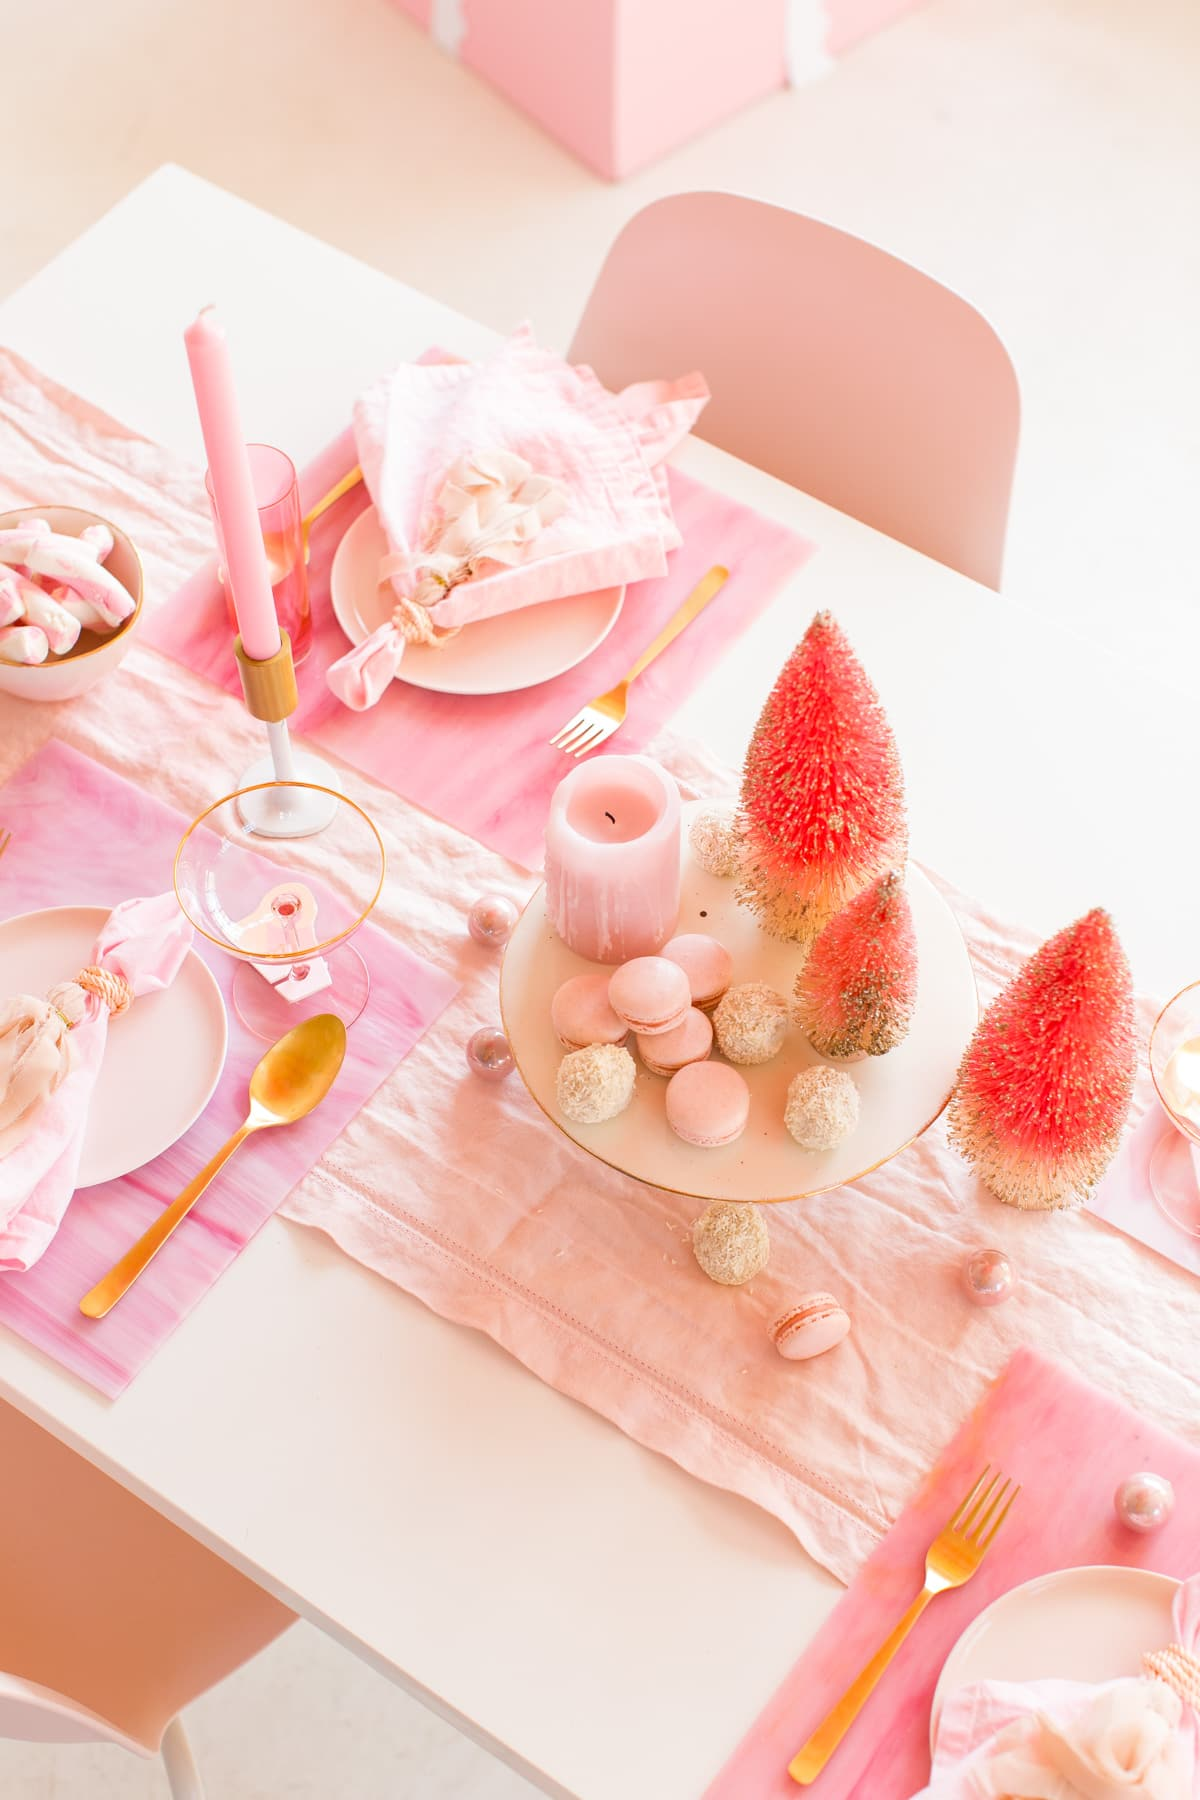 A Perfectly Pink Holiday Party Table by Houston lifestyle blogger Ashley Rose of Sugar & Cloth